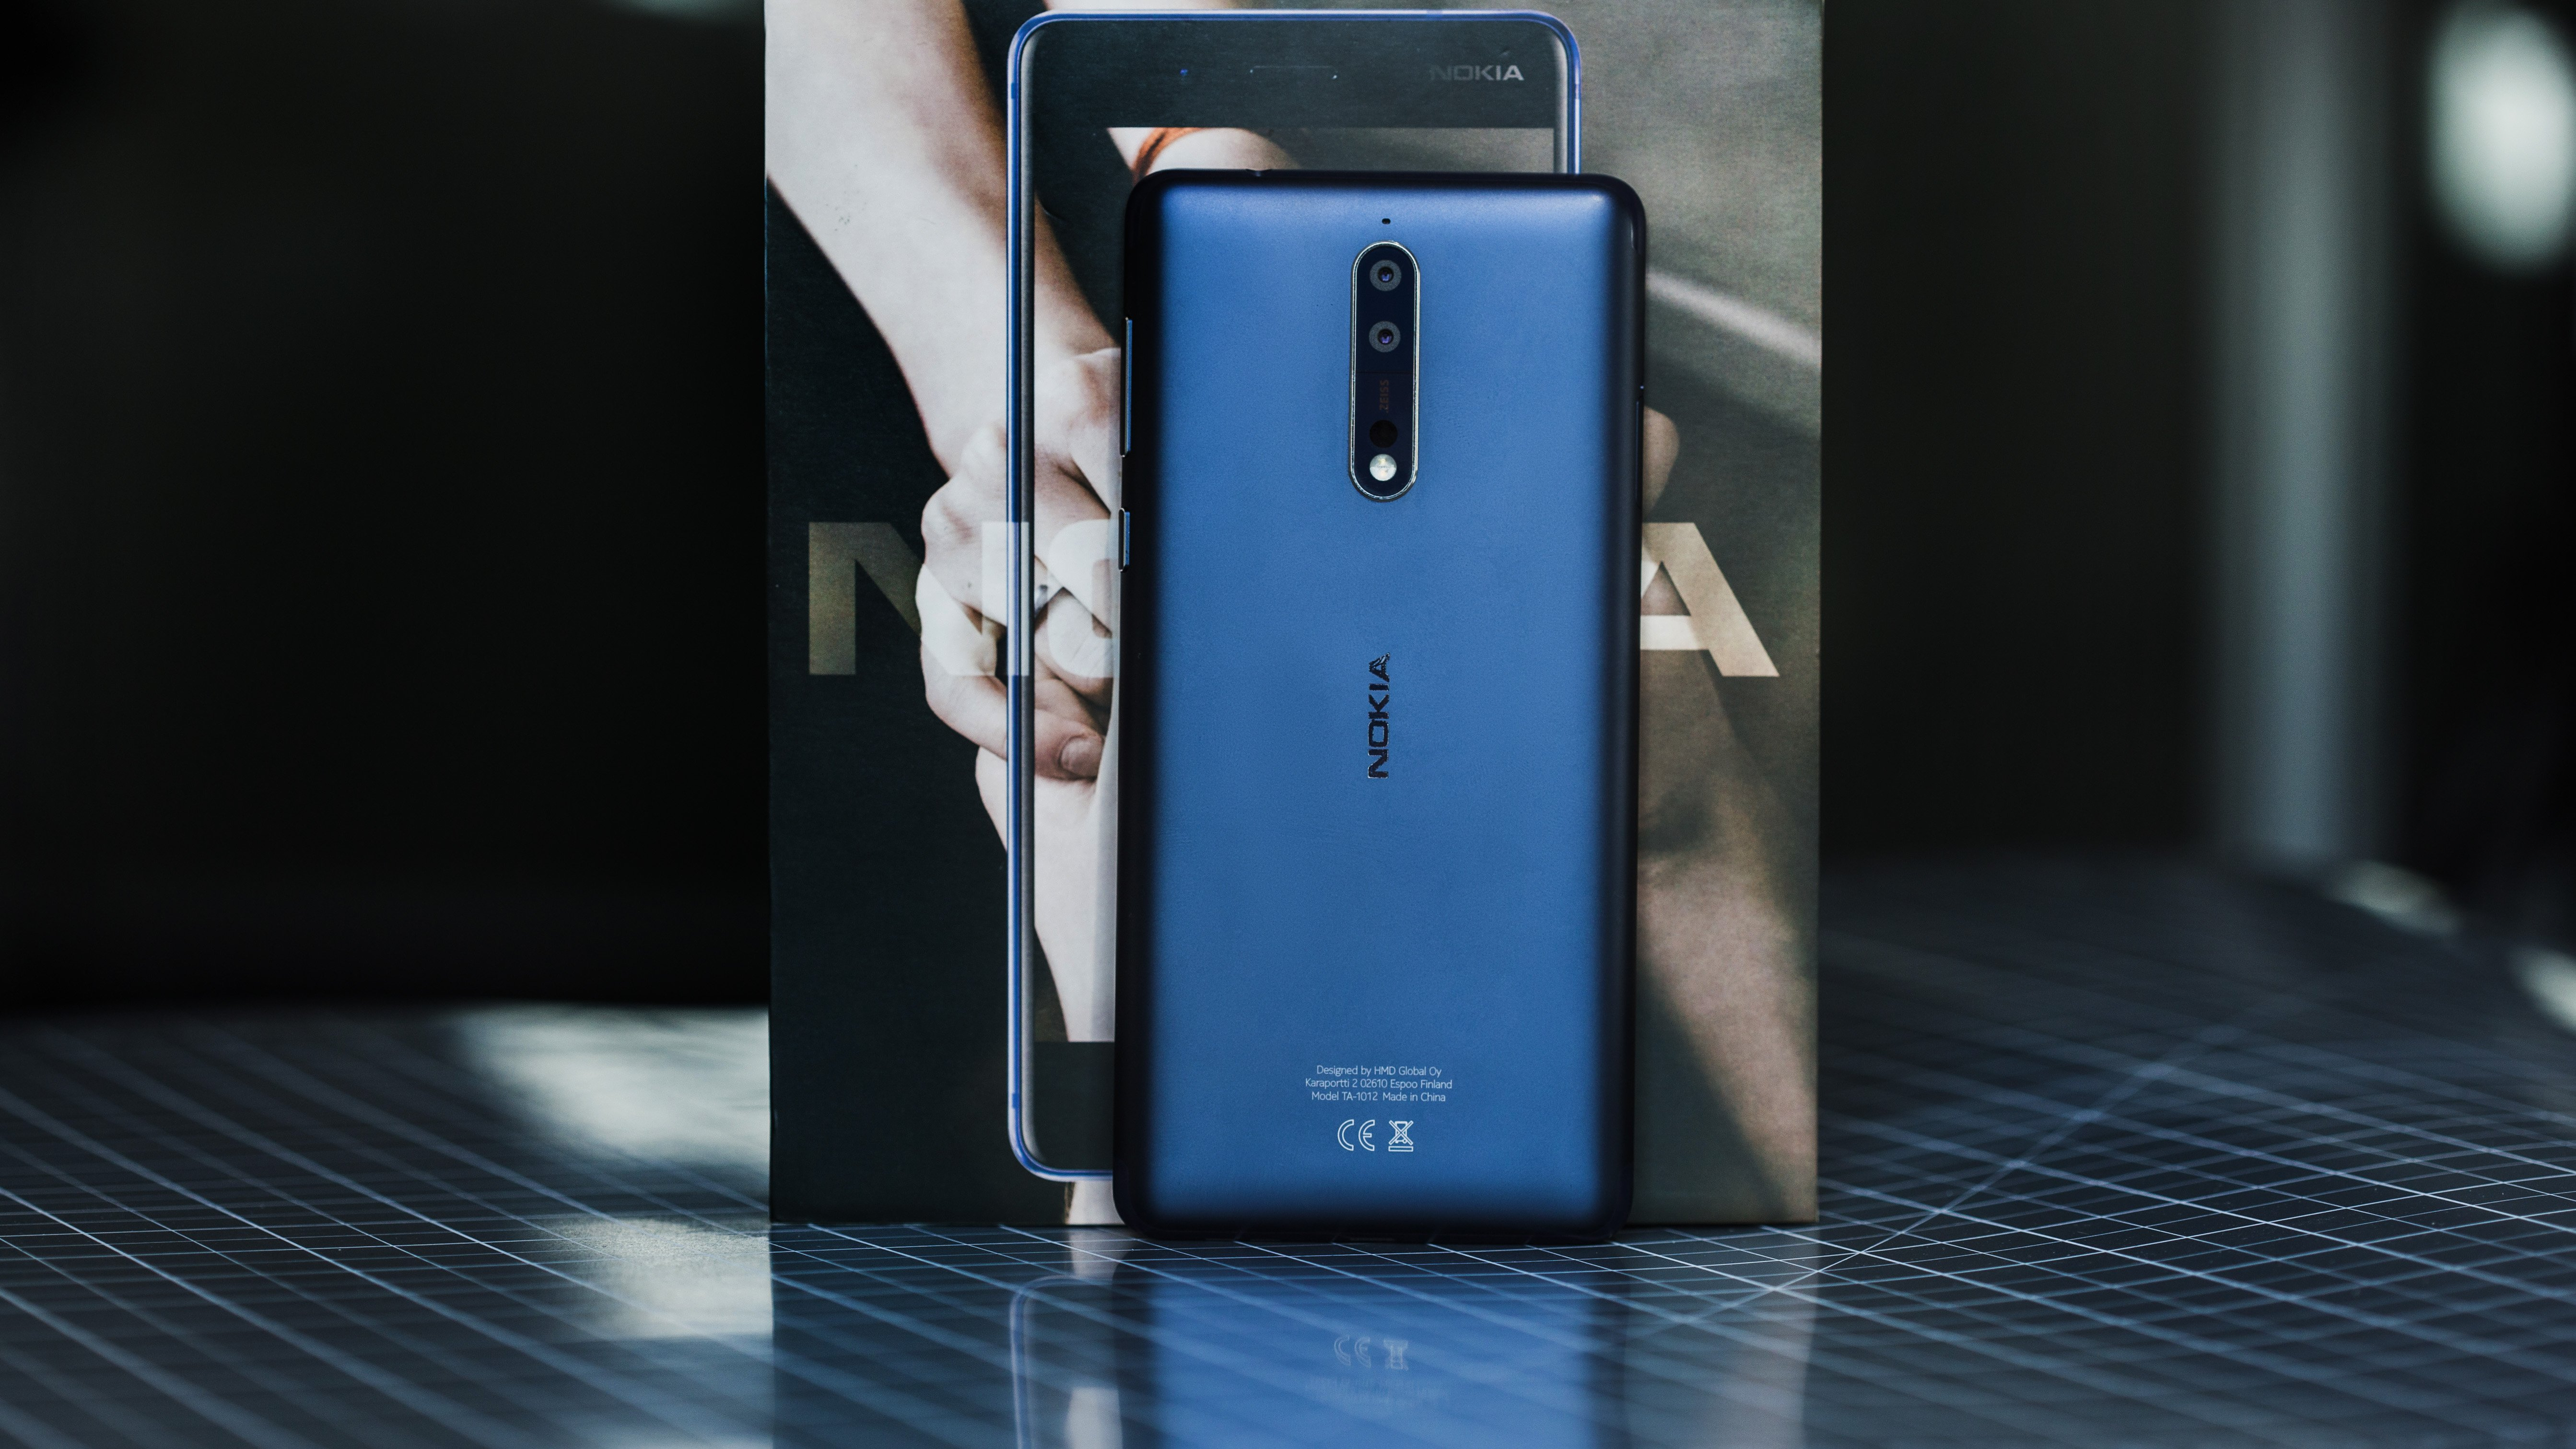 Nokia 8 Review An Interesting Flagship With Room For